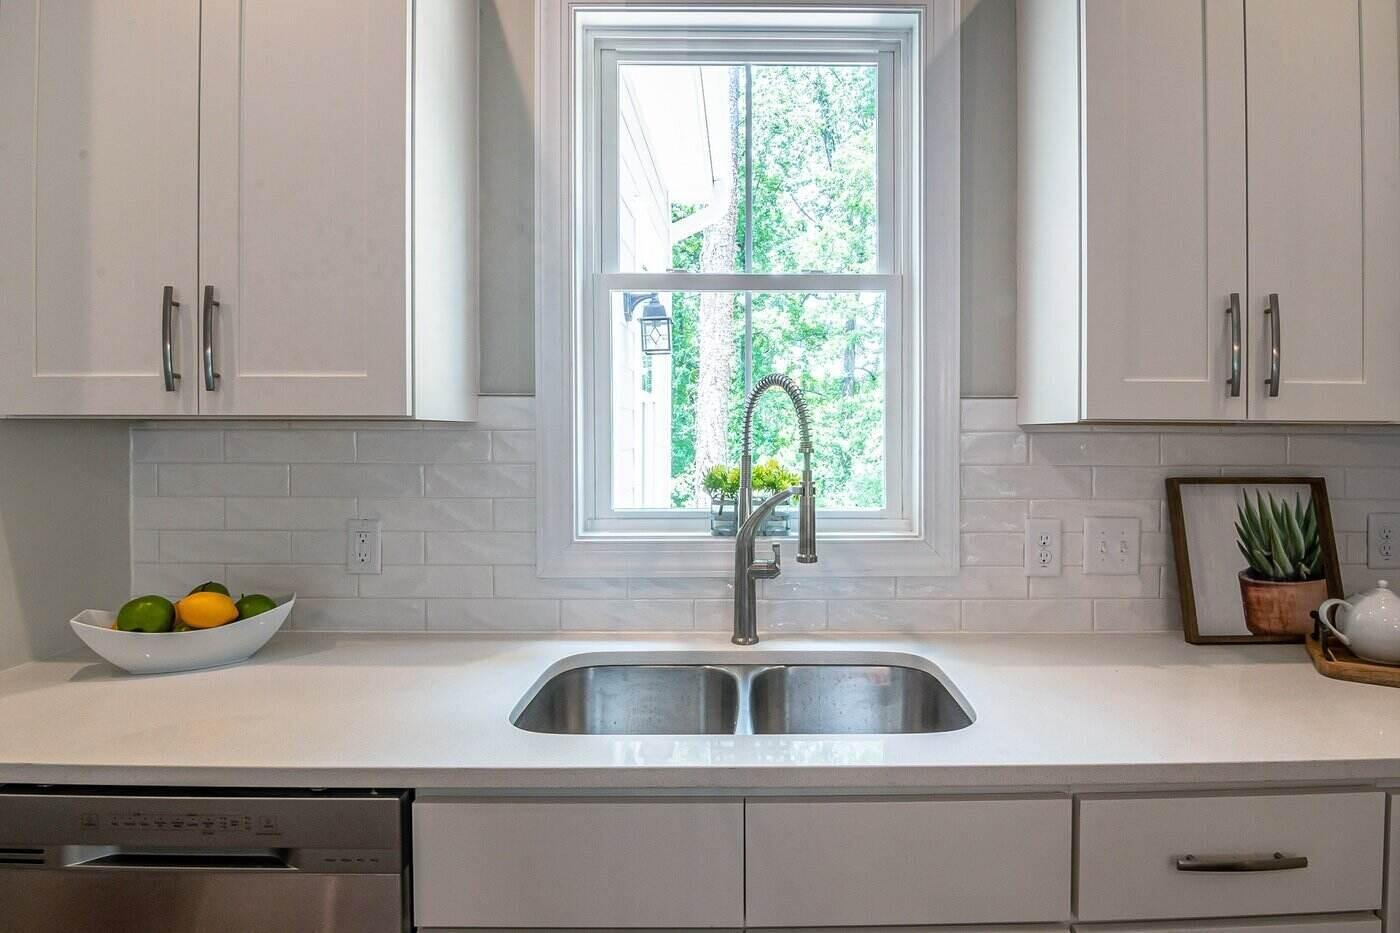 window flanked by kitchen cabinets - eco-friendly kitchen cabinets